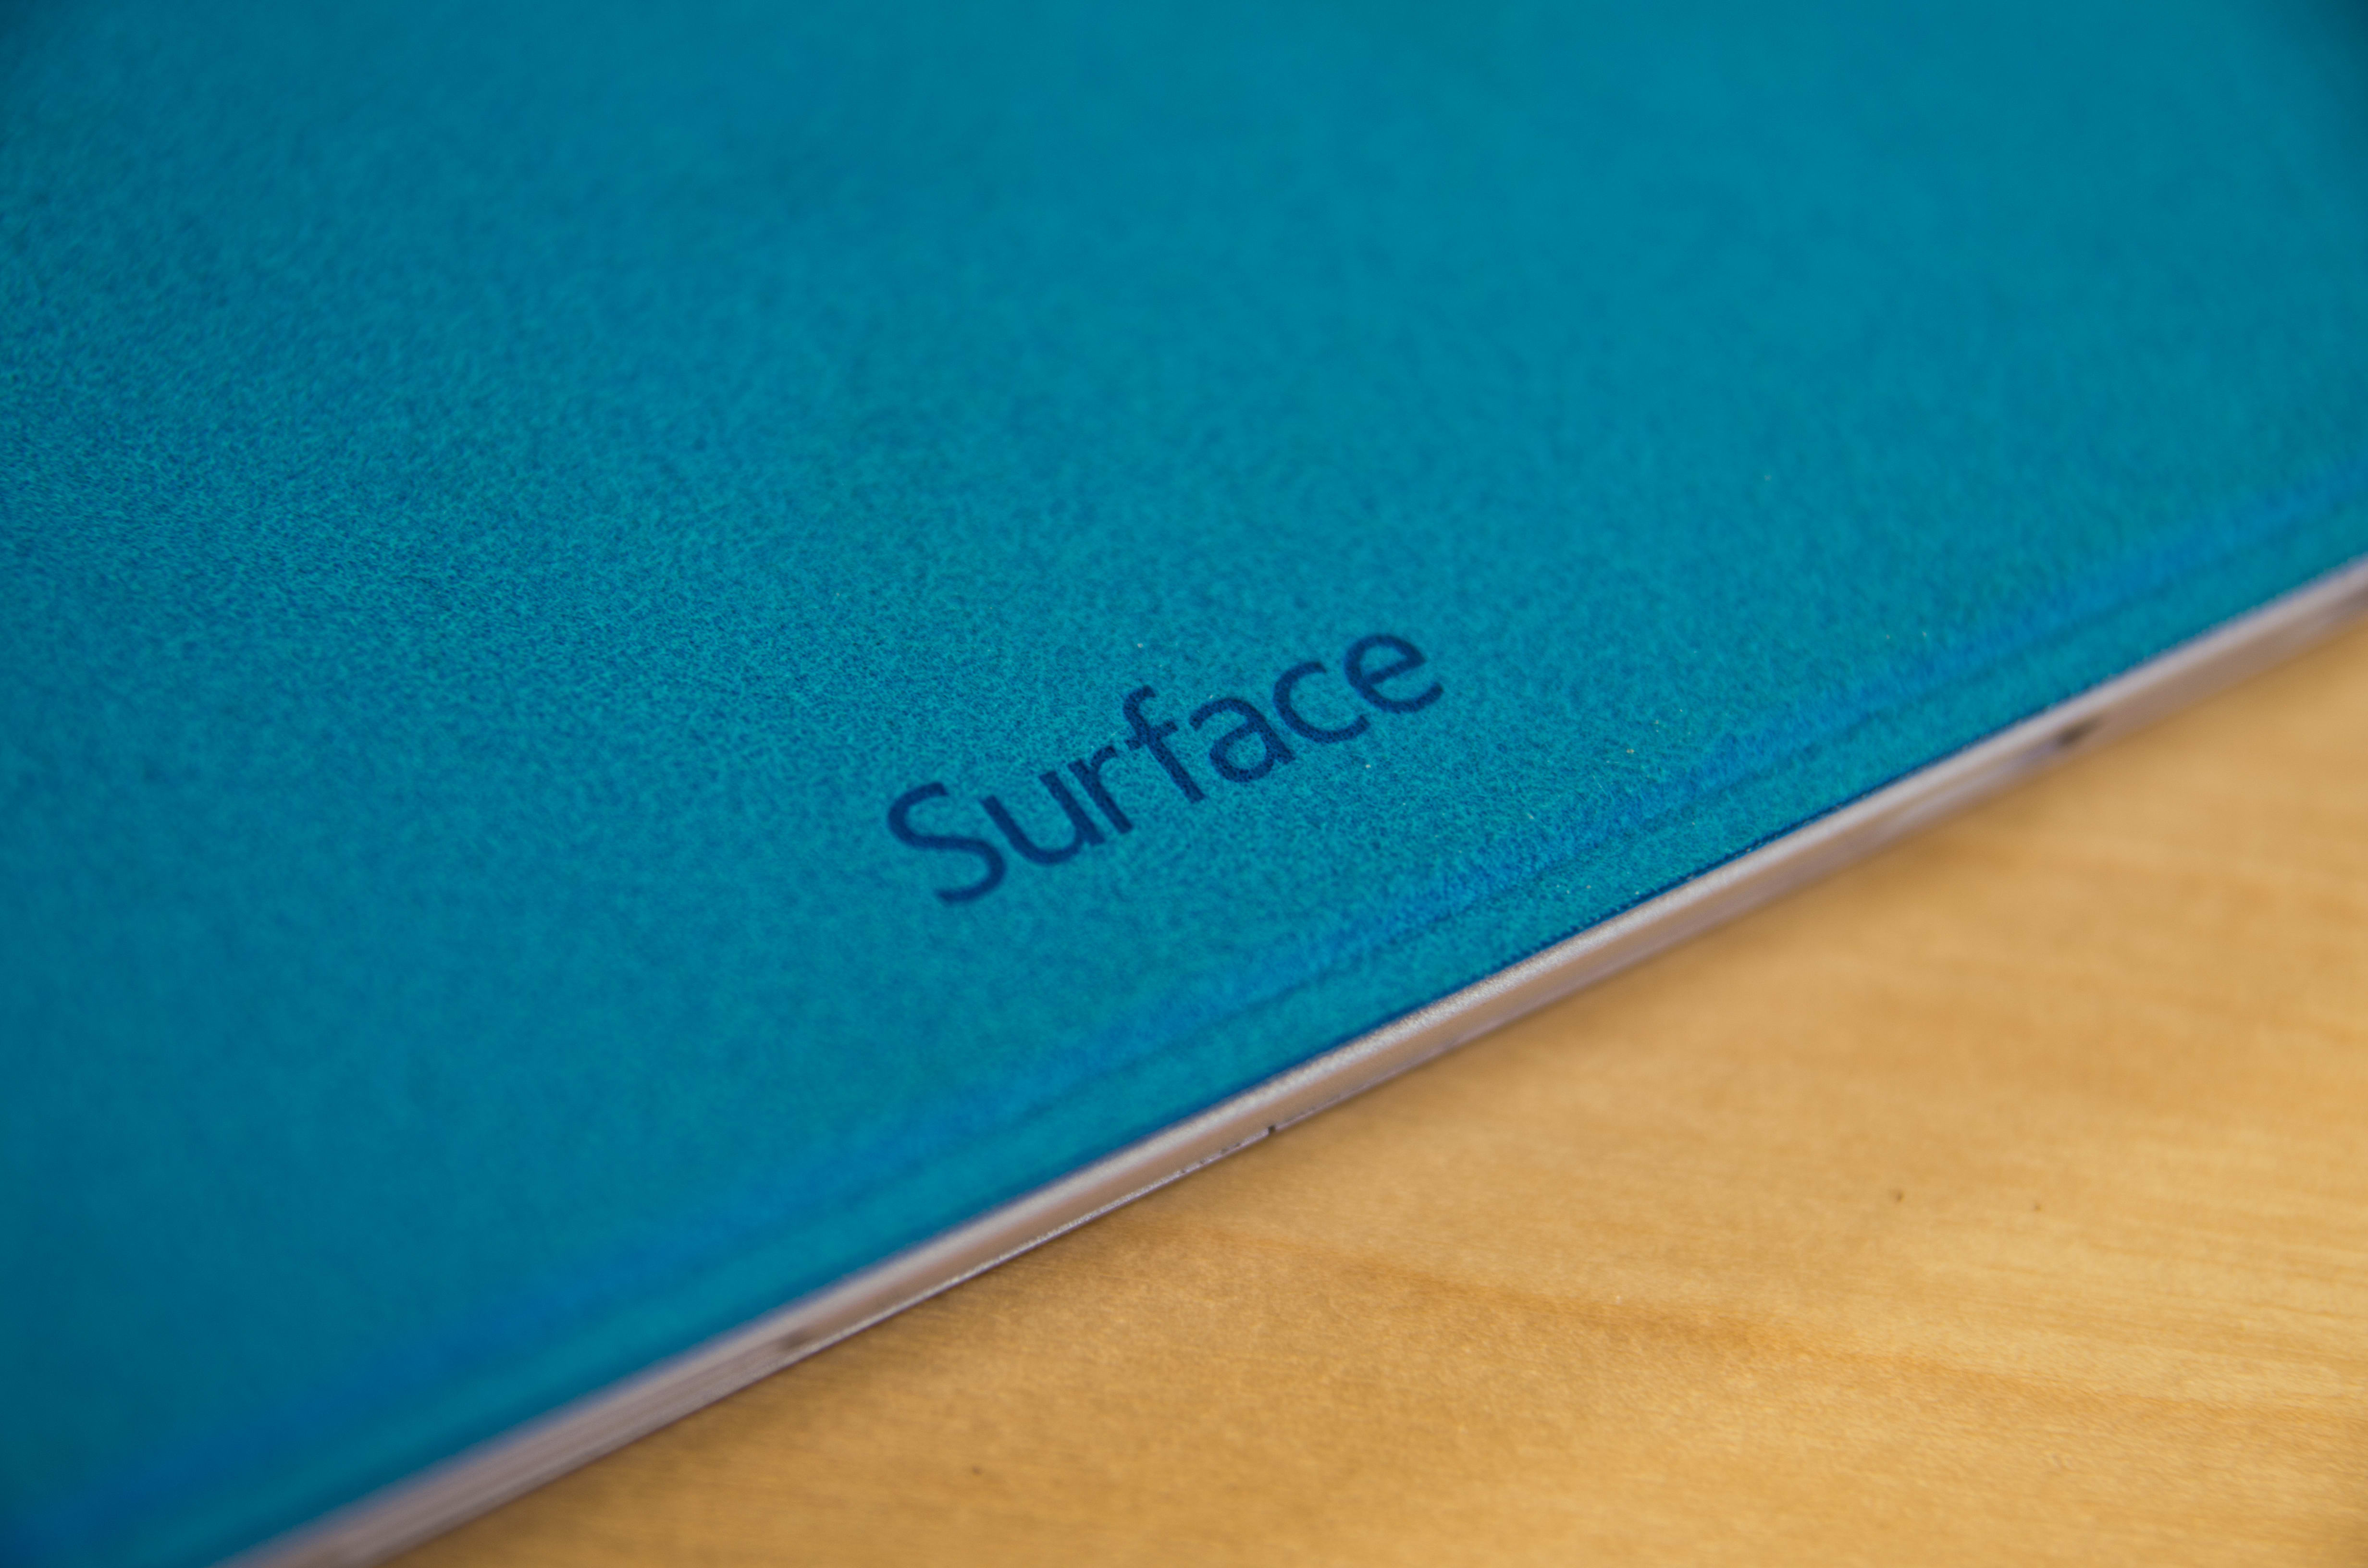 A closer look at the Microsoft Surface Pro 3's cover.